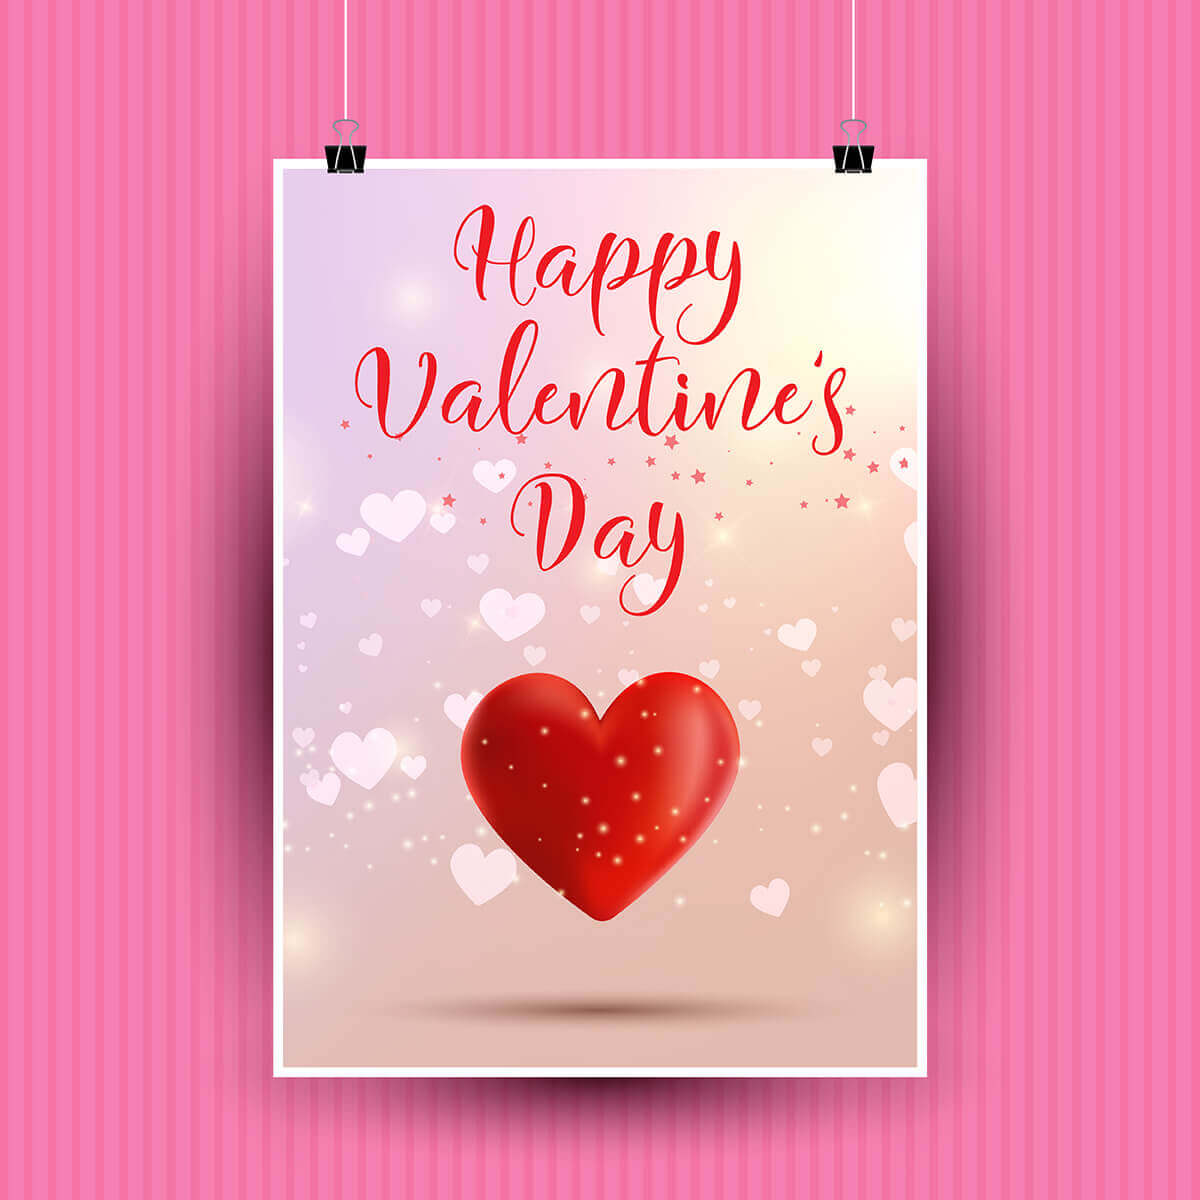 happy valentines day pictures, images